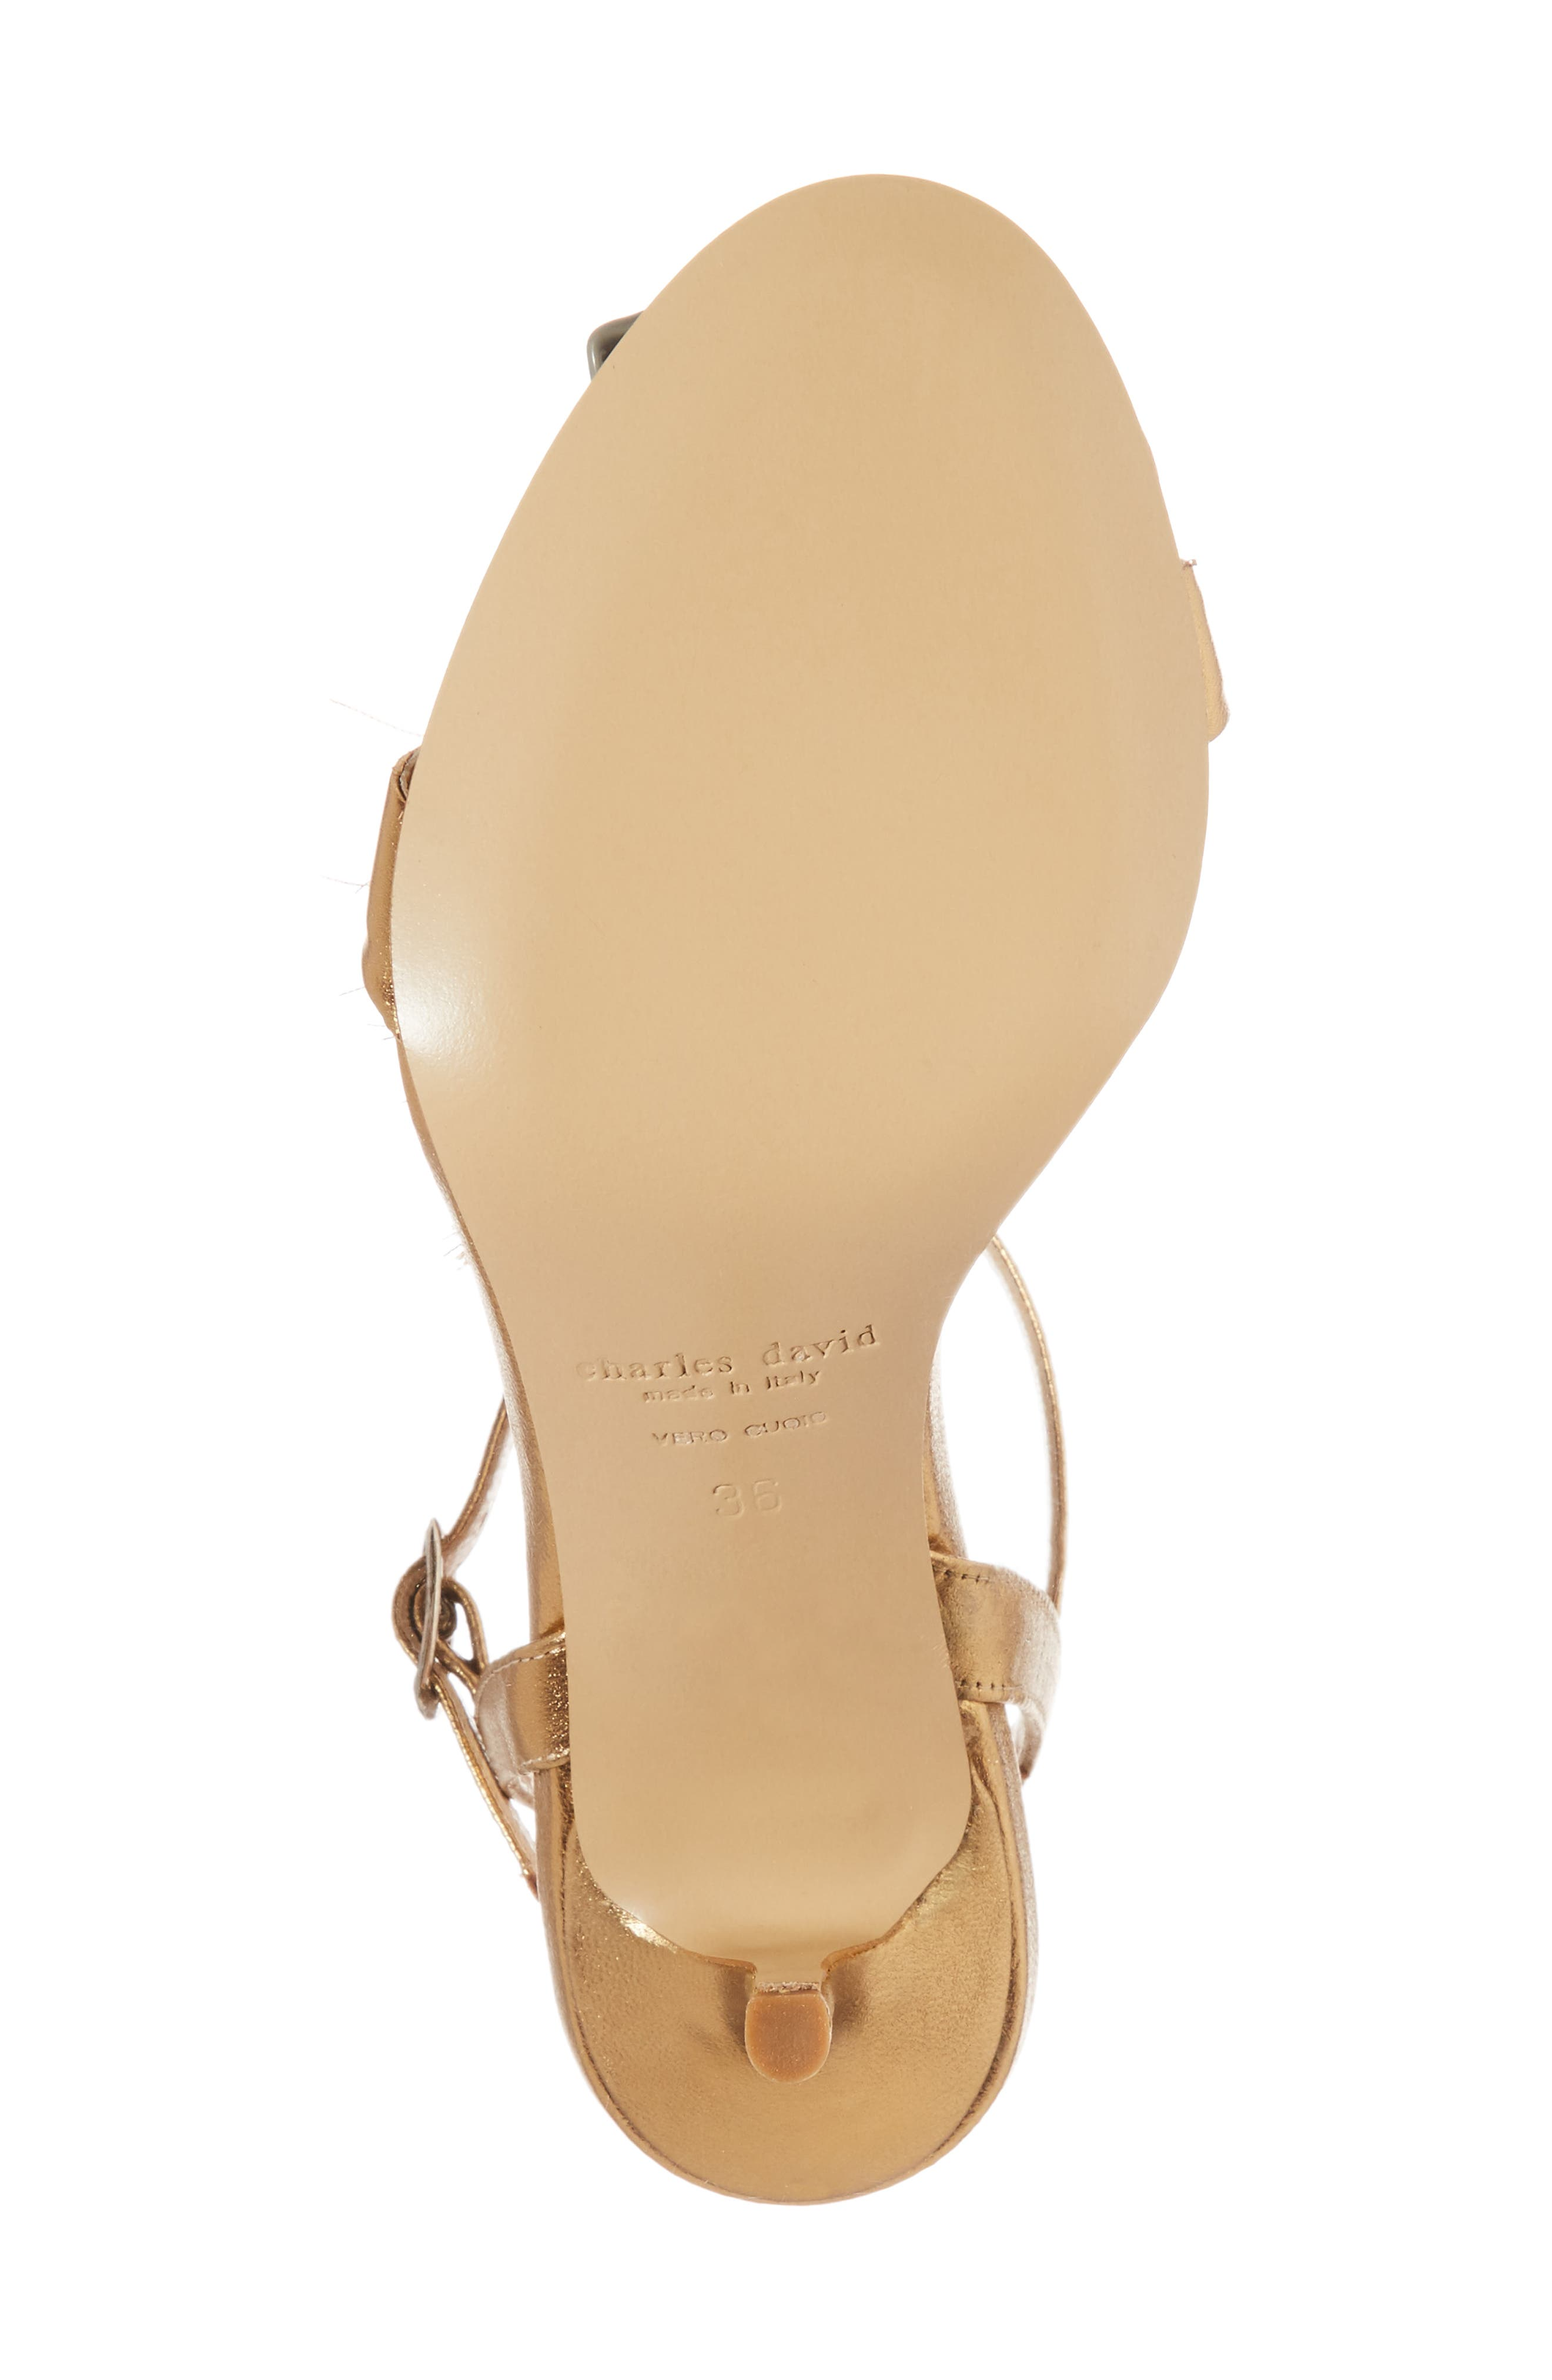 Sassy Tassel Sandal,                             Alternate thumbnail 6, color,                             GOLD LEATHER